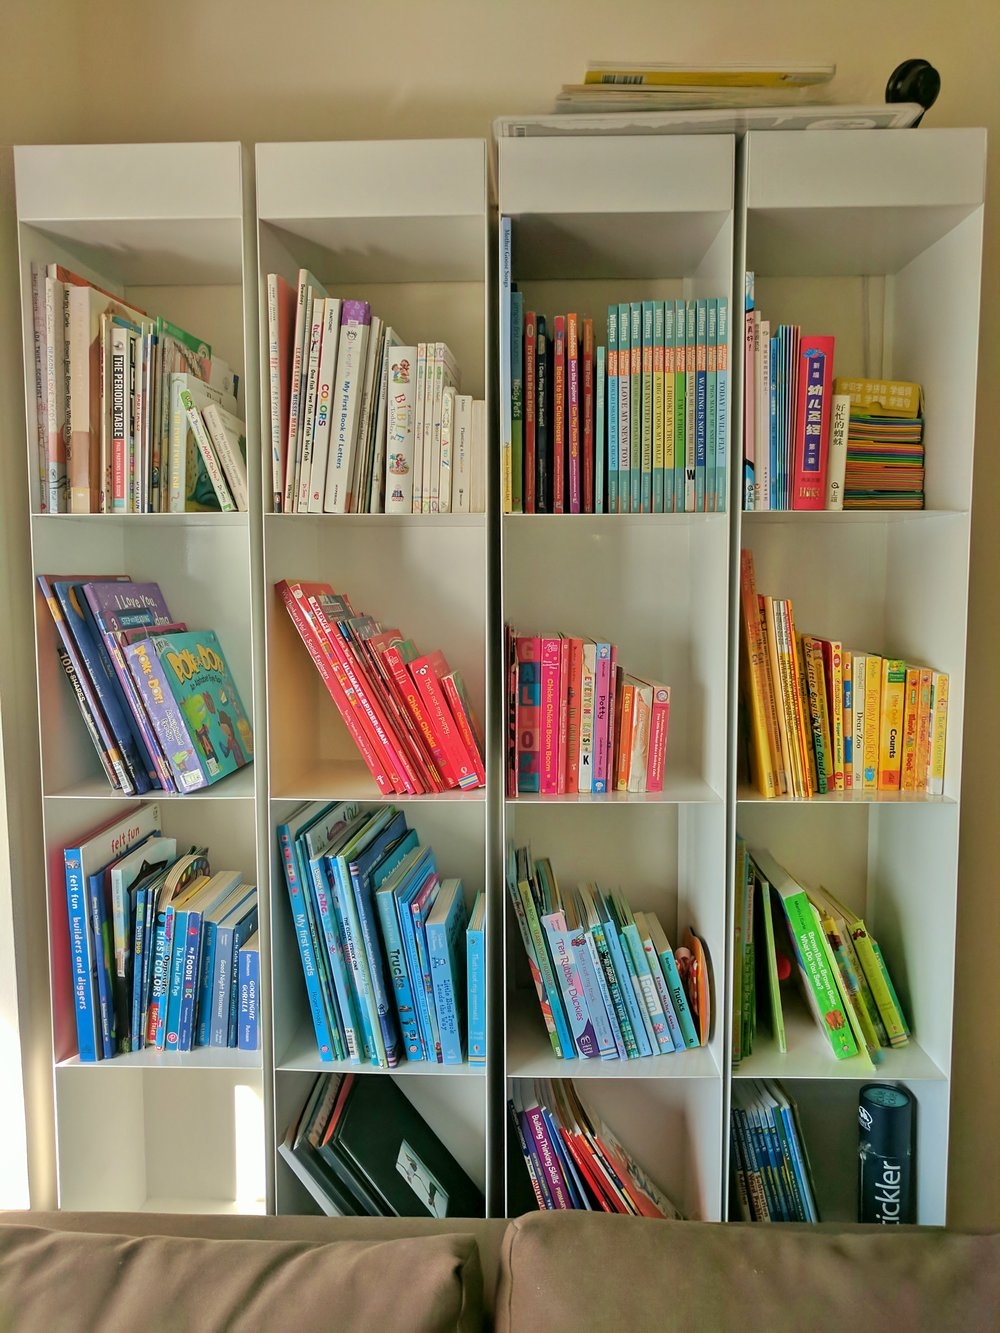 Aaah - Color coordinated kids books - Aesthetically pleasing to parents and kids alike.